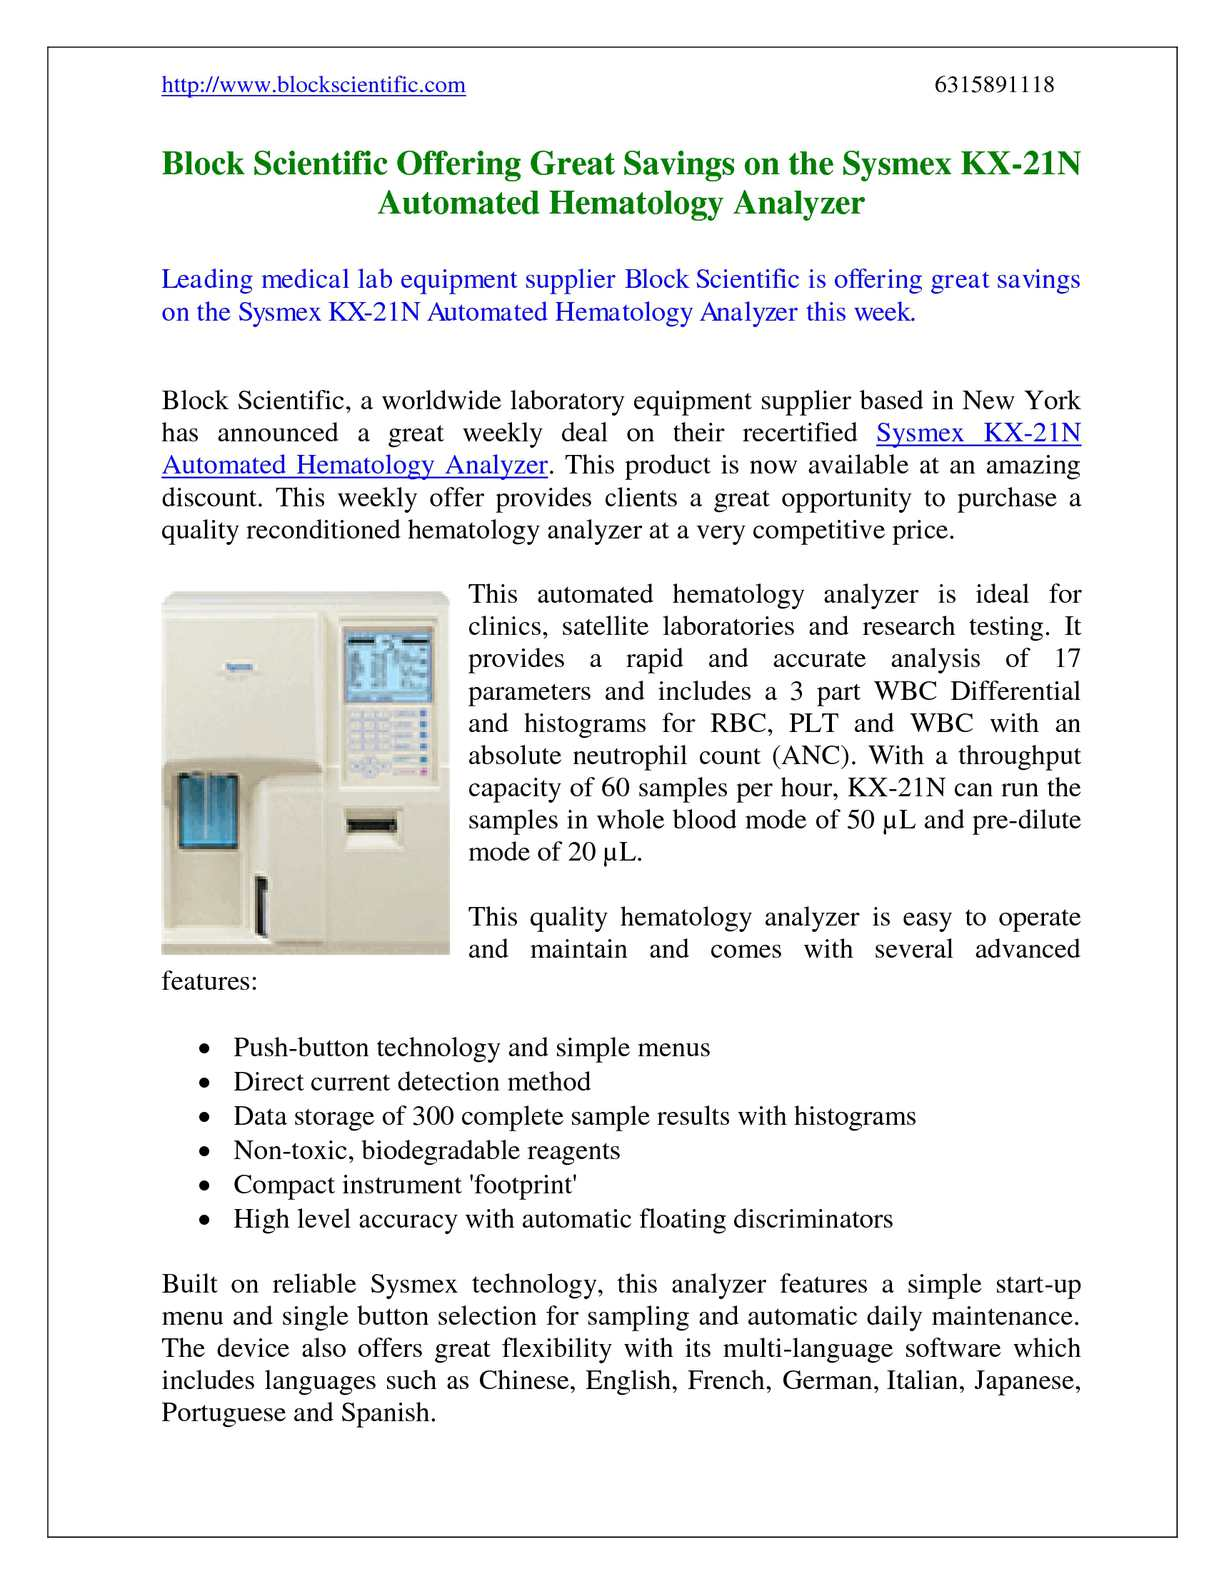 Calaméo - Block Scientific Offering Great Savings on the Sysmex KX